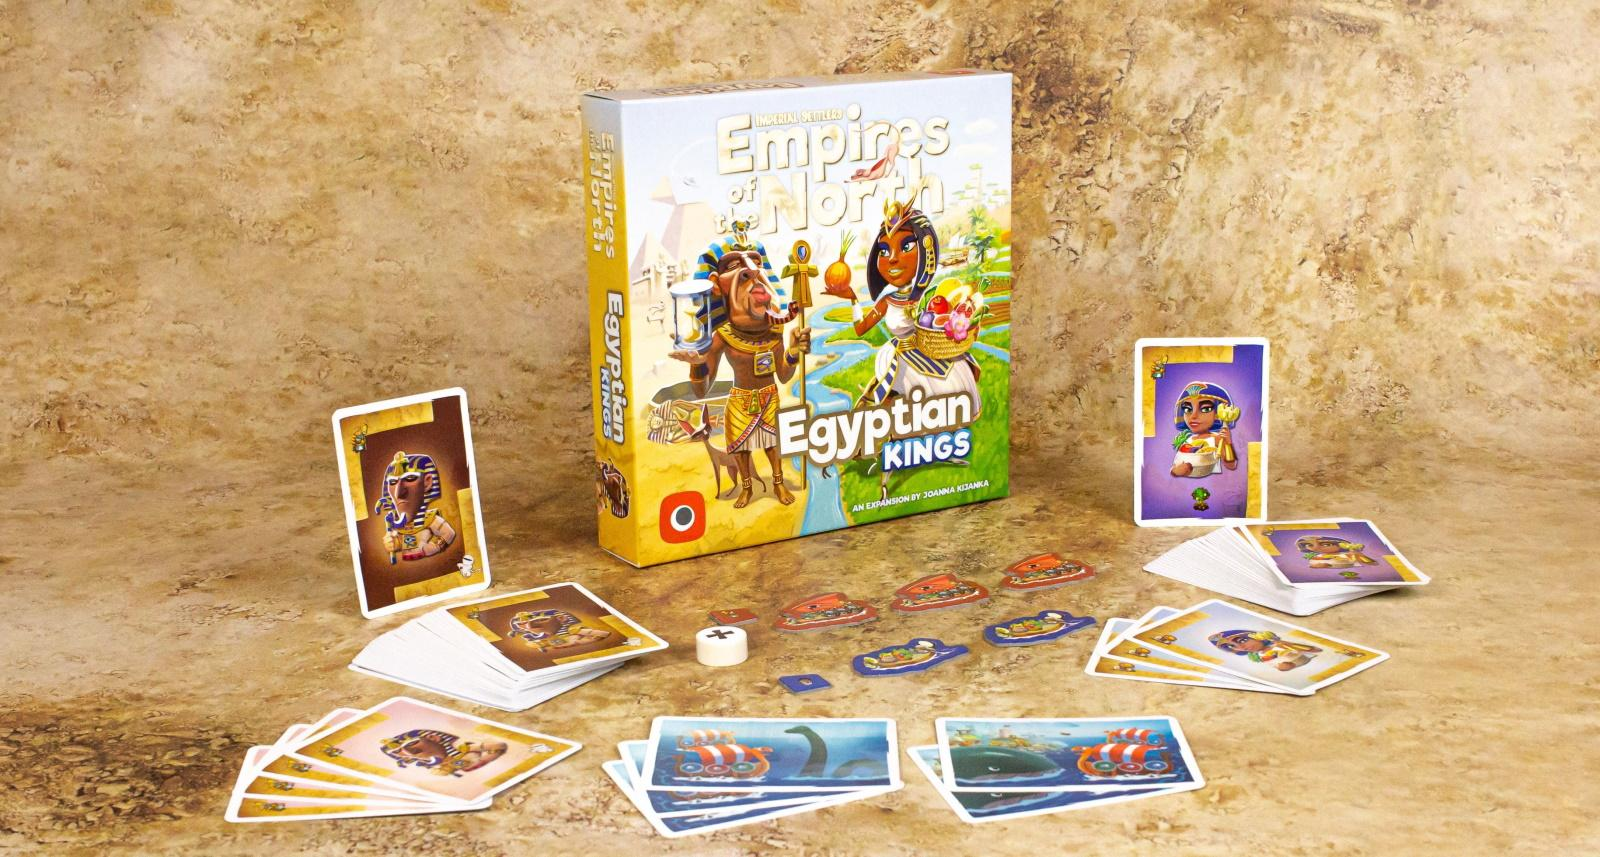 Empires of the North Egyptians